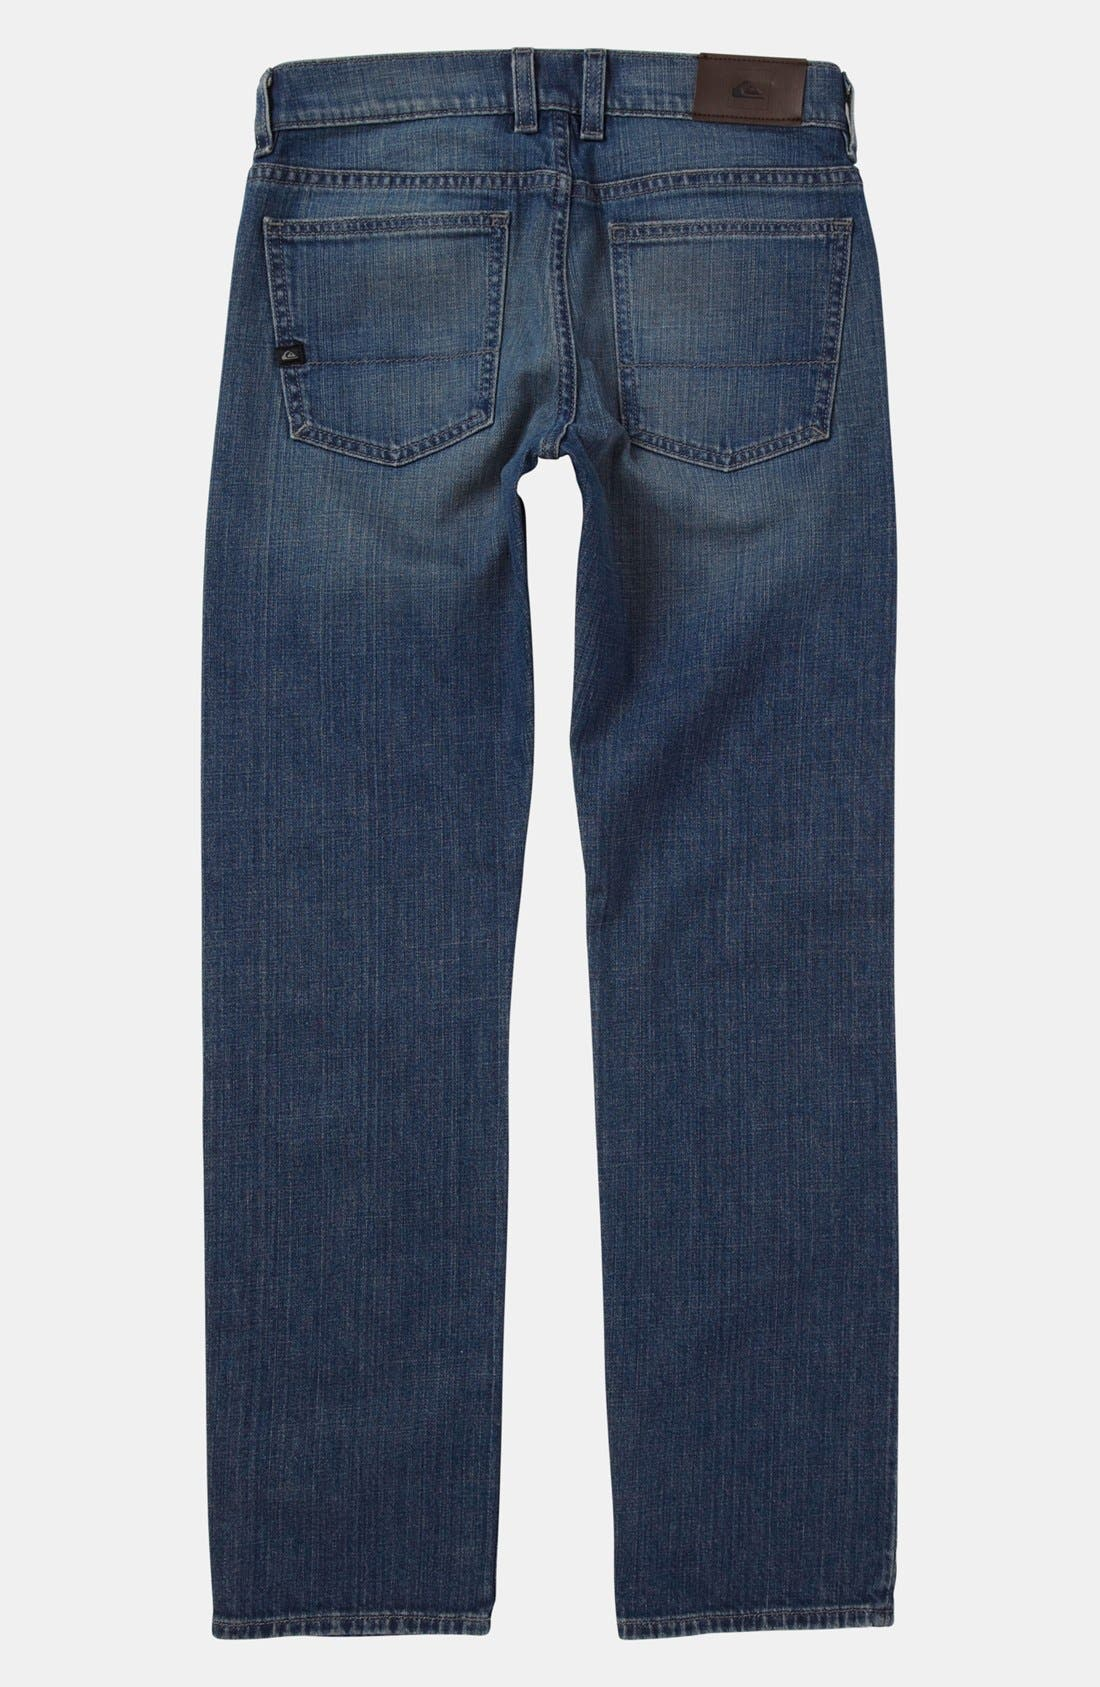 Main Image - Quiksilver 'Distortion' Slim Straight Leg Jeans (Big Boys)